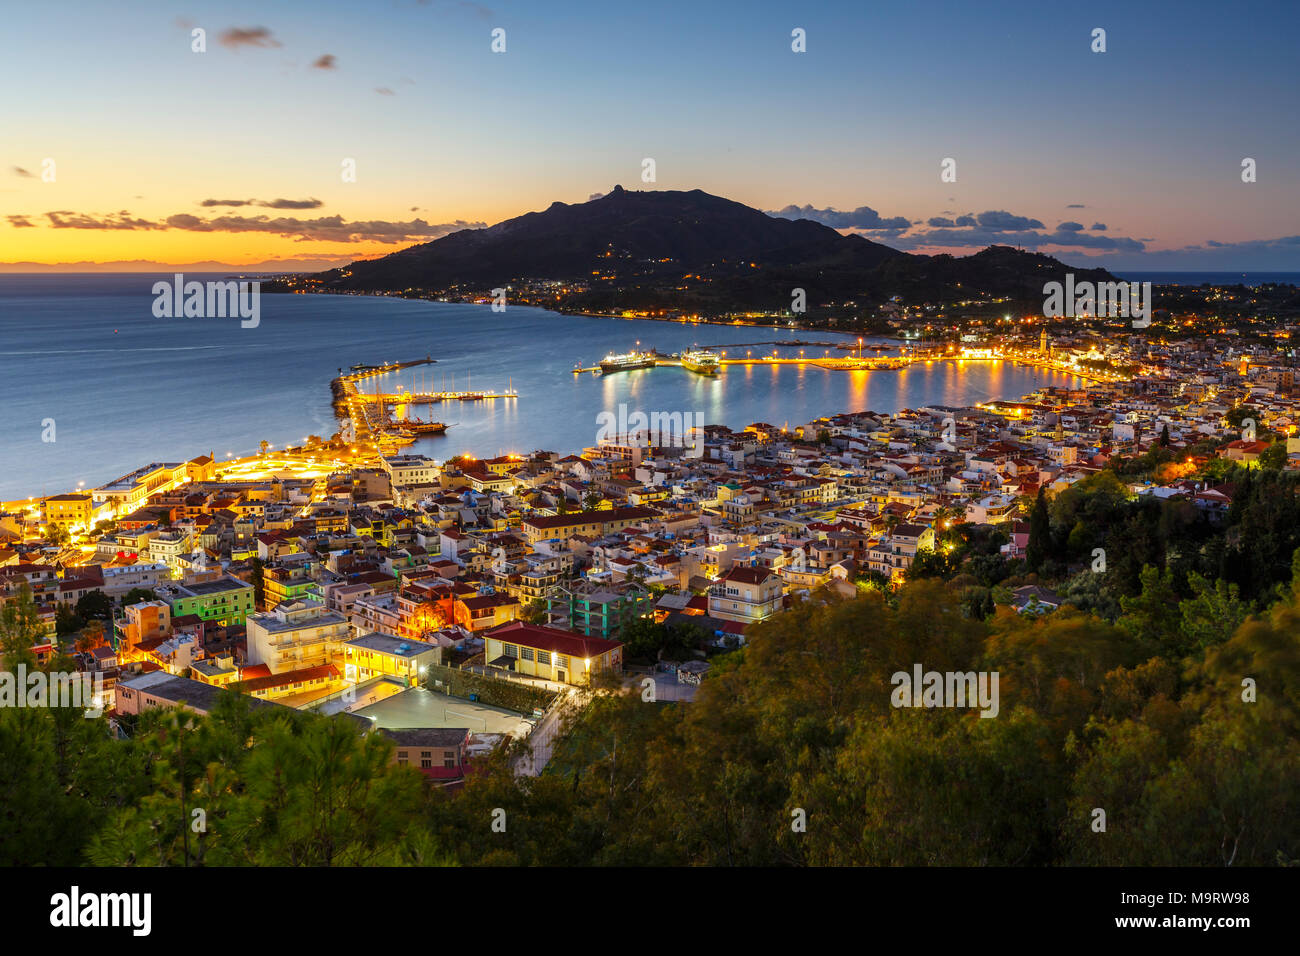 Sunrise over Zakynthos town and its harbour, Greece. - Stock Image